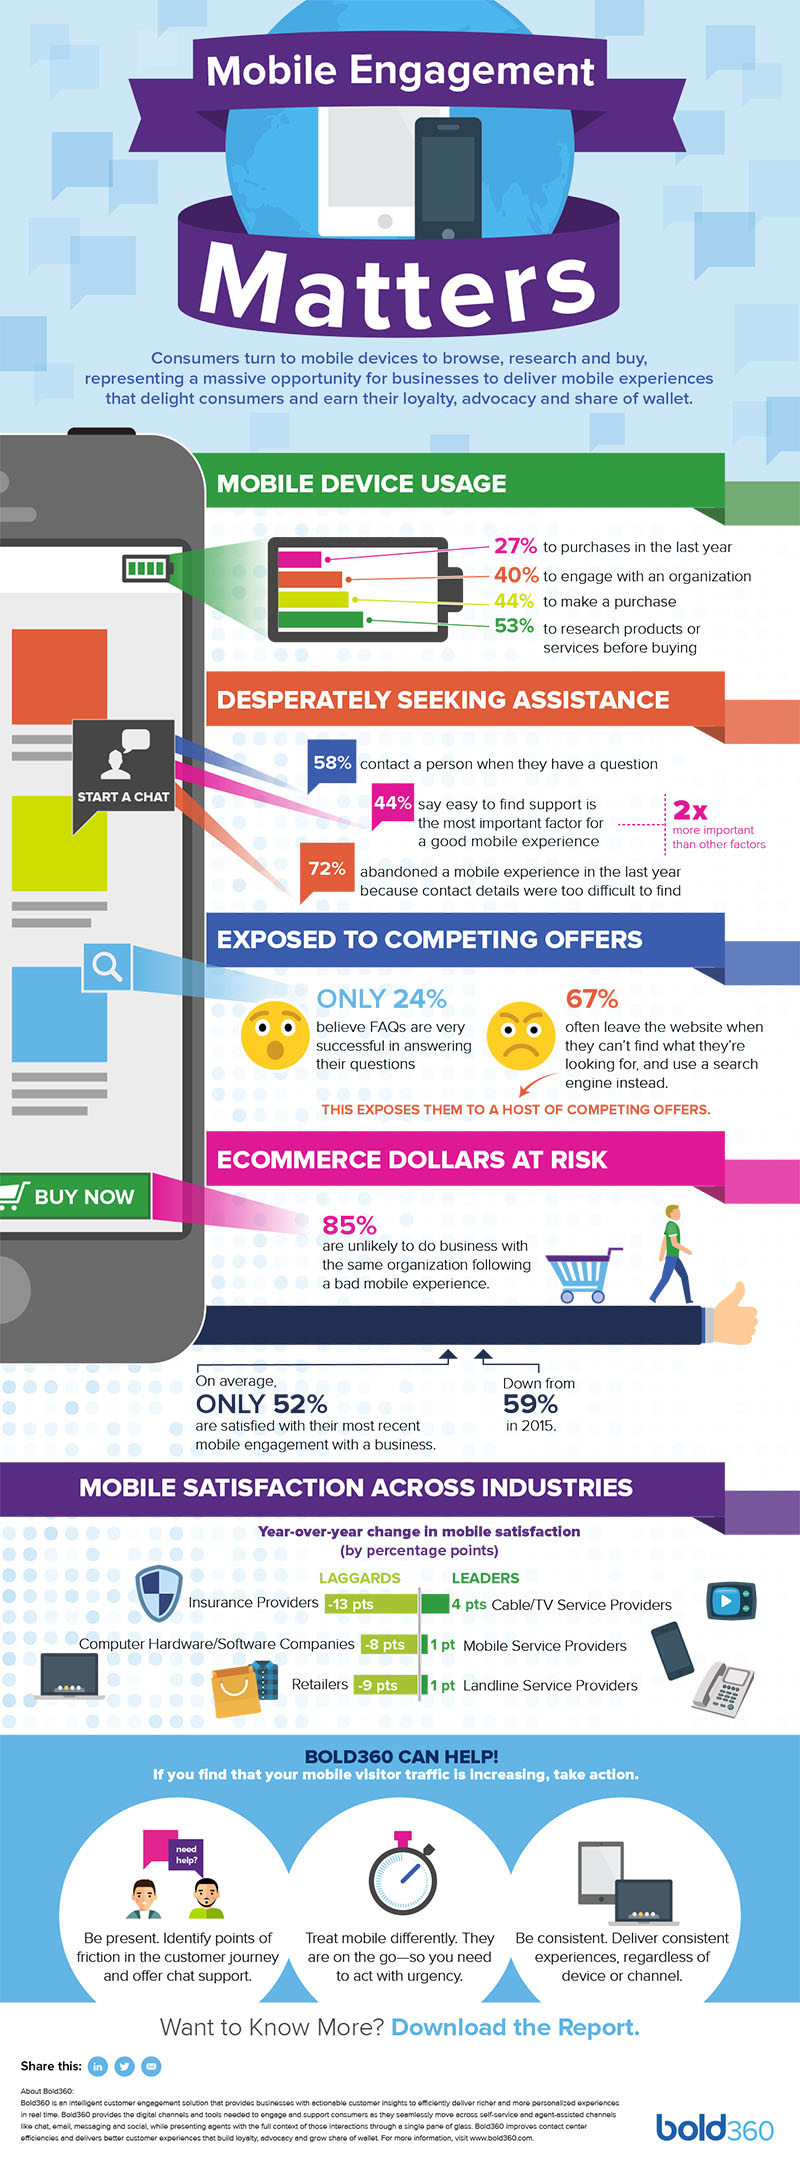 BoldChat_Mobile-Engagement-Matters_Infographic